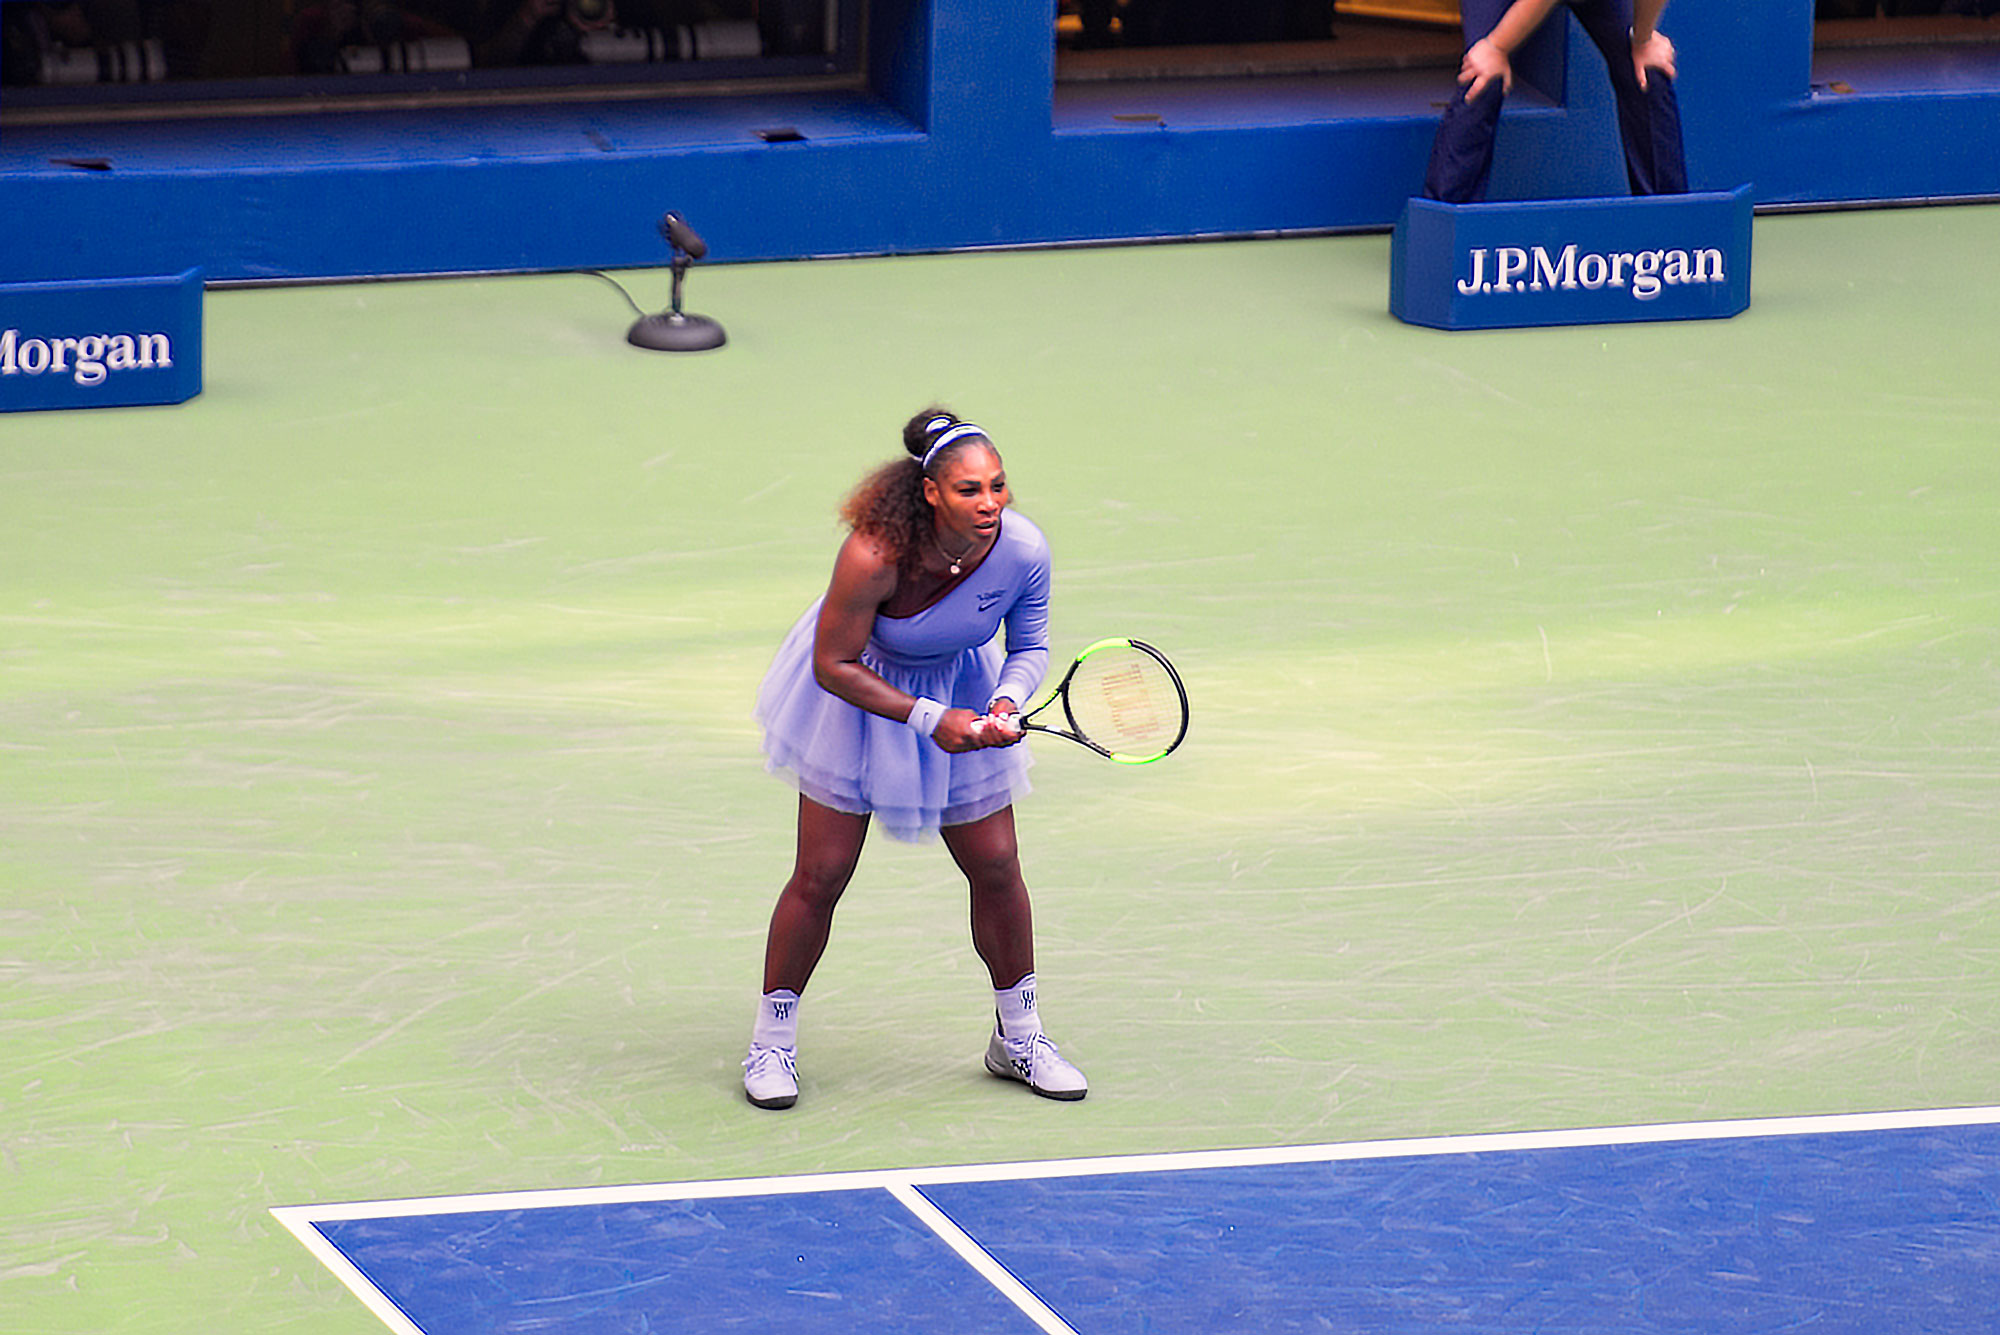 Serena Williams in action at the round of 16, US Open